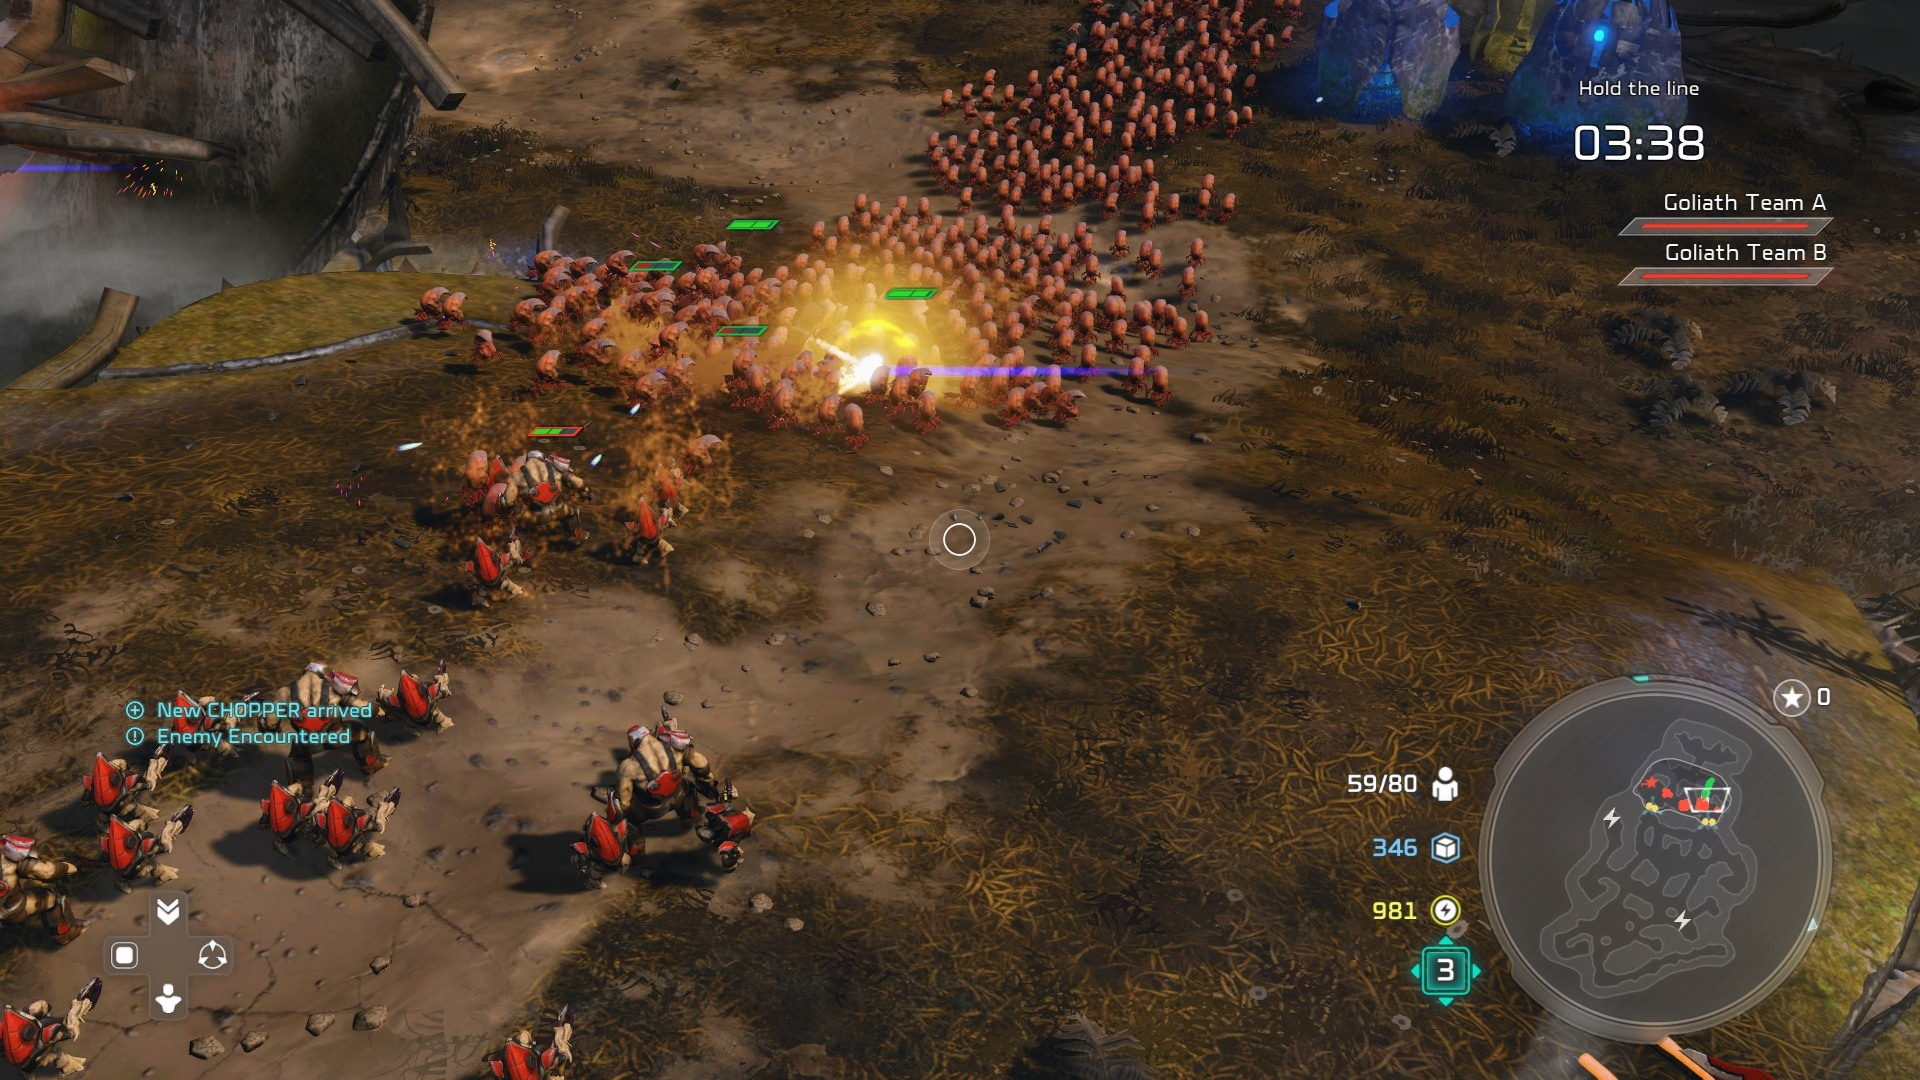 Halo Wars 2: Awakening the Nightmare - recenzia - hra | Sector